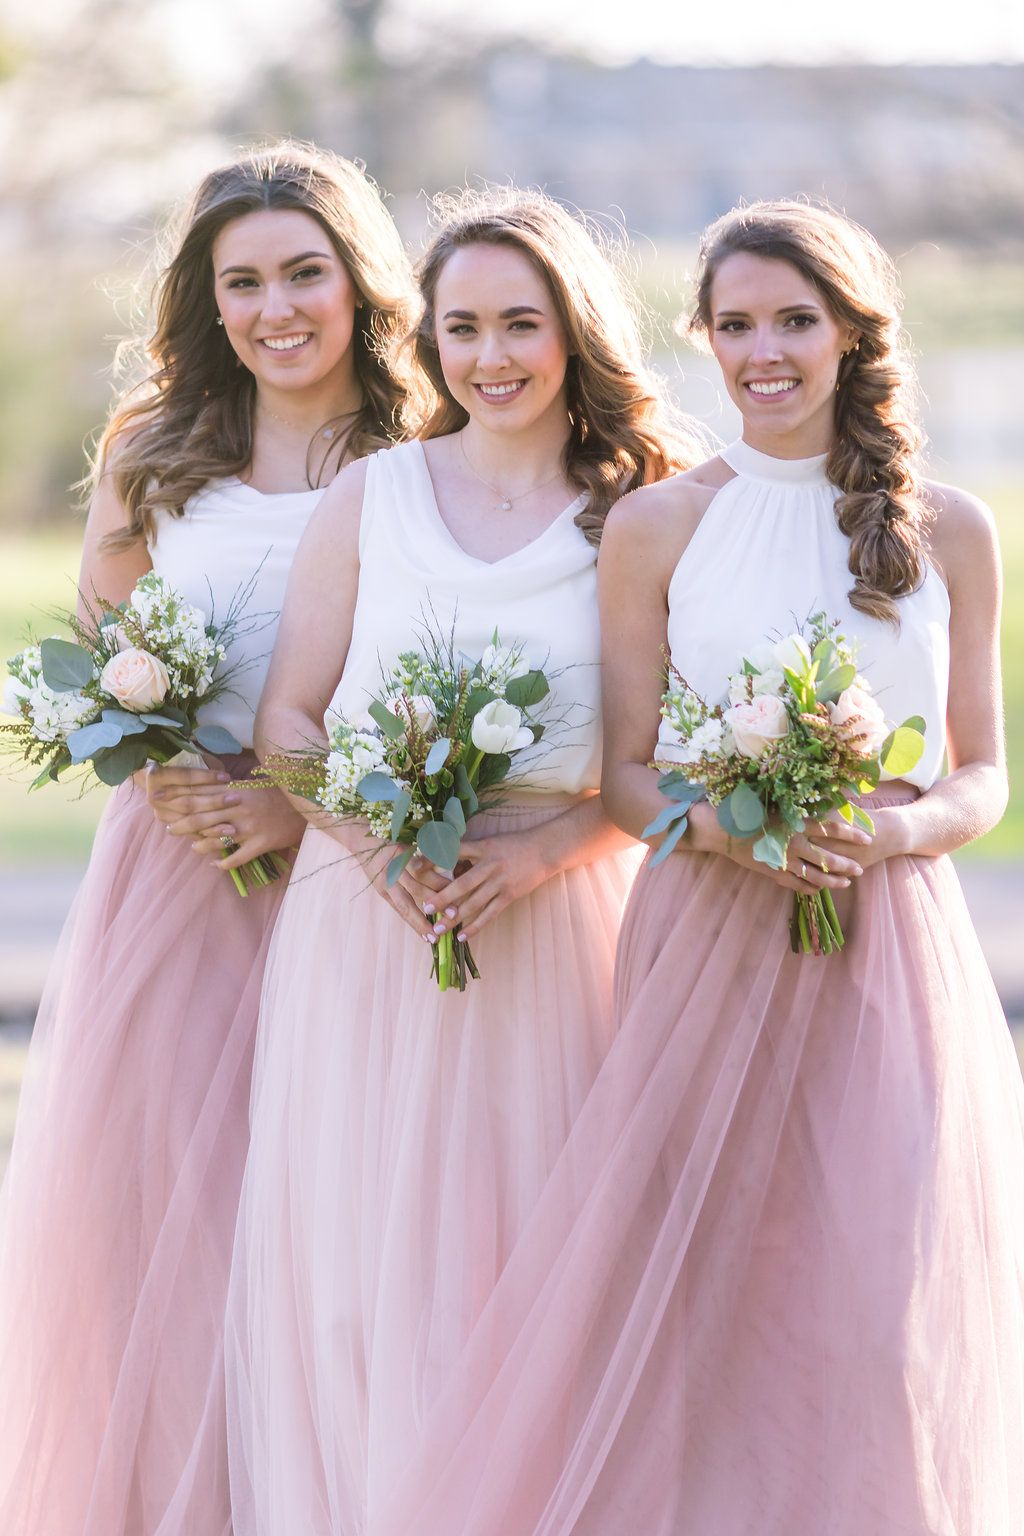 02e424161e Rose Quartz and blush tulle maxi skirts with white bridesmaid tops by Love  Tanya. Affordable and trendy mismatched bridal party